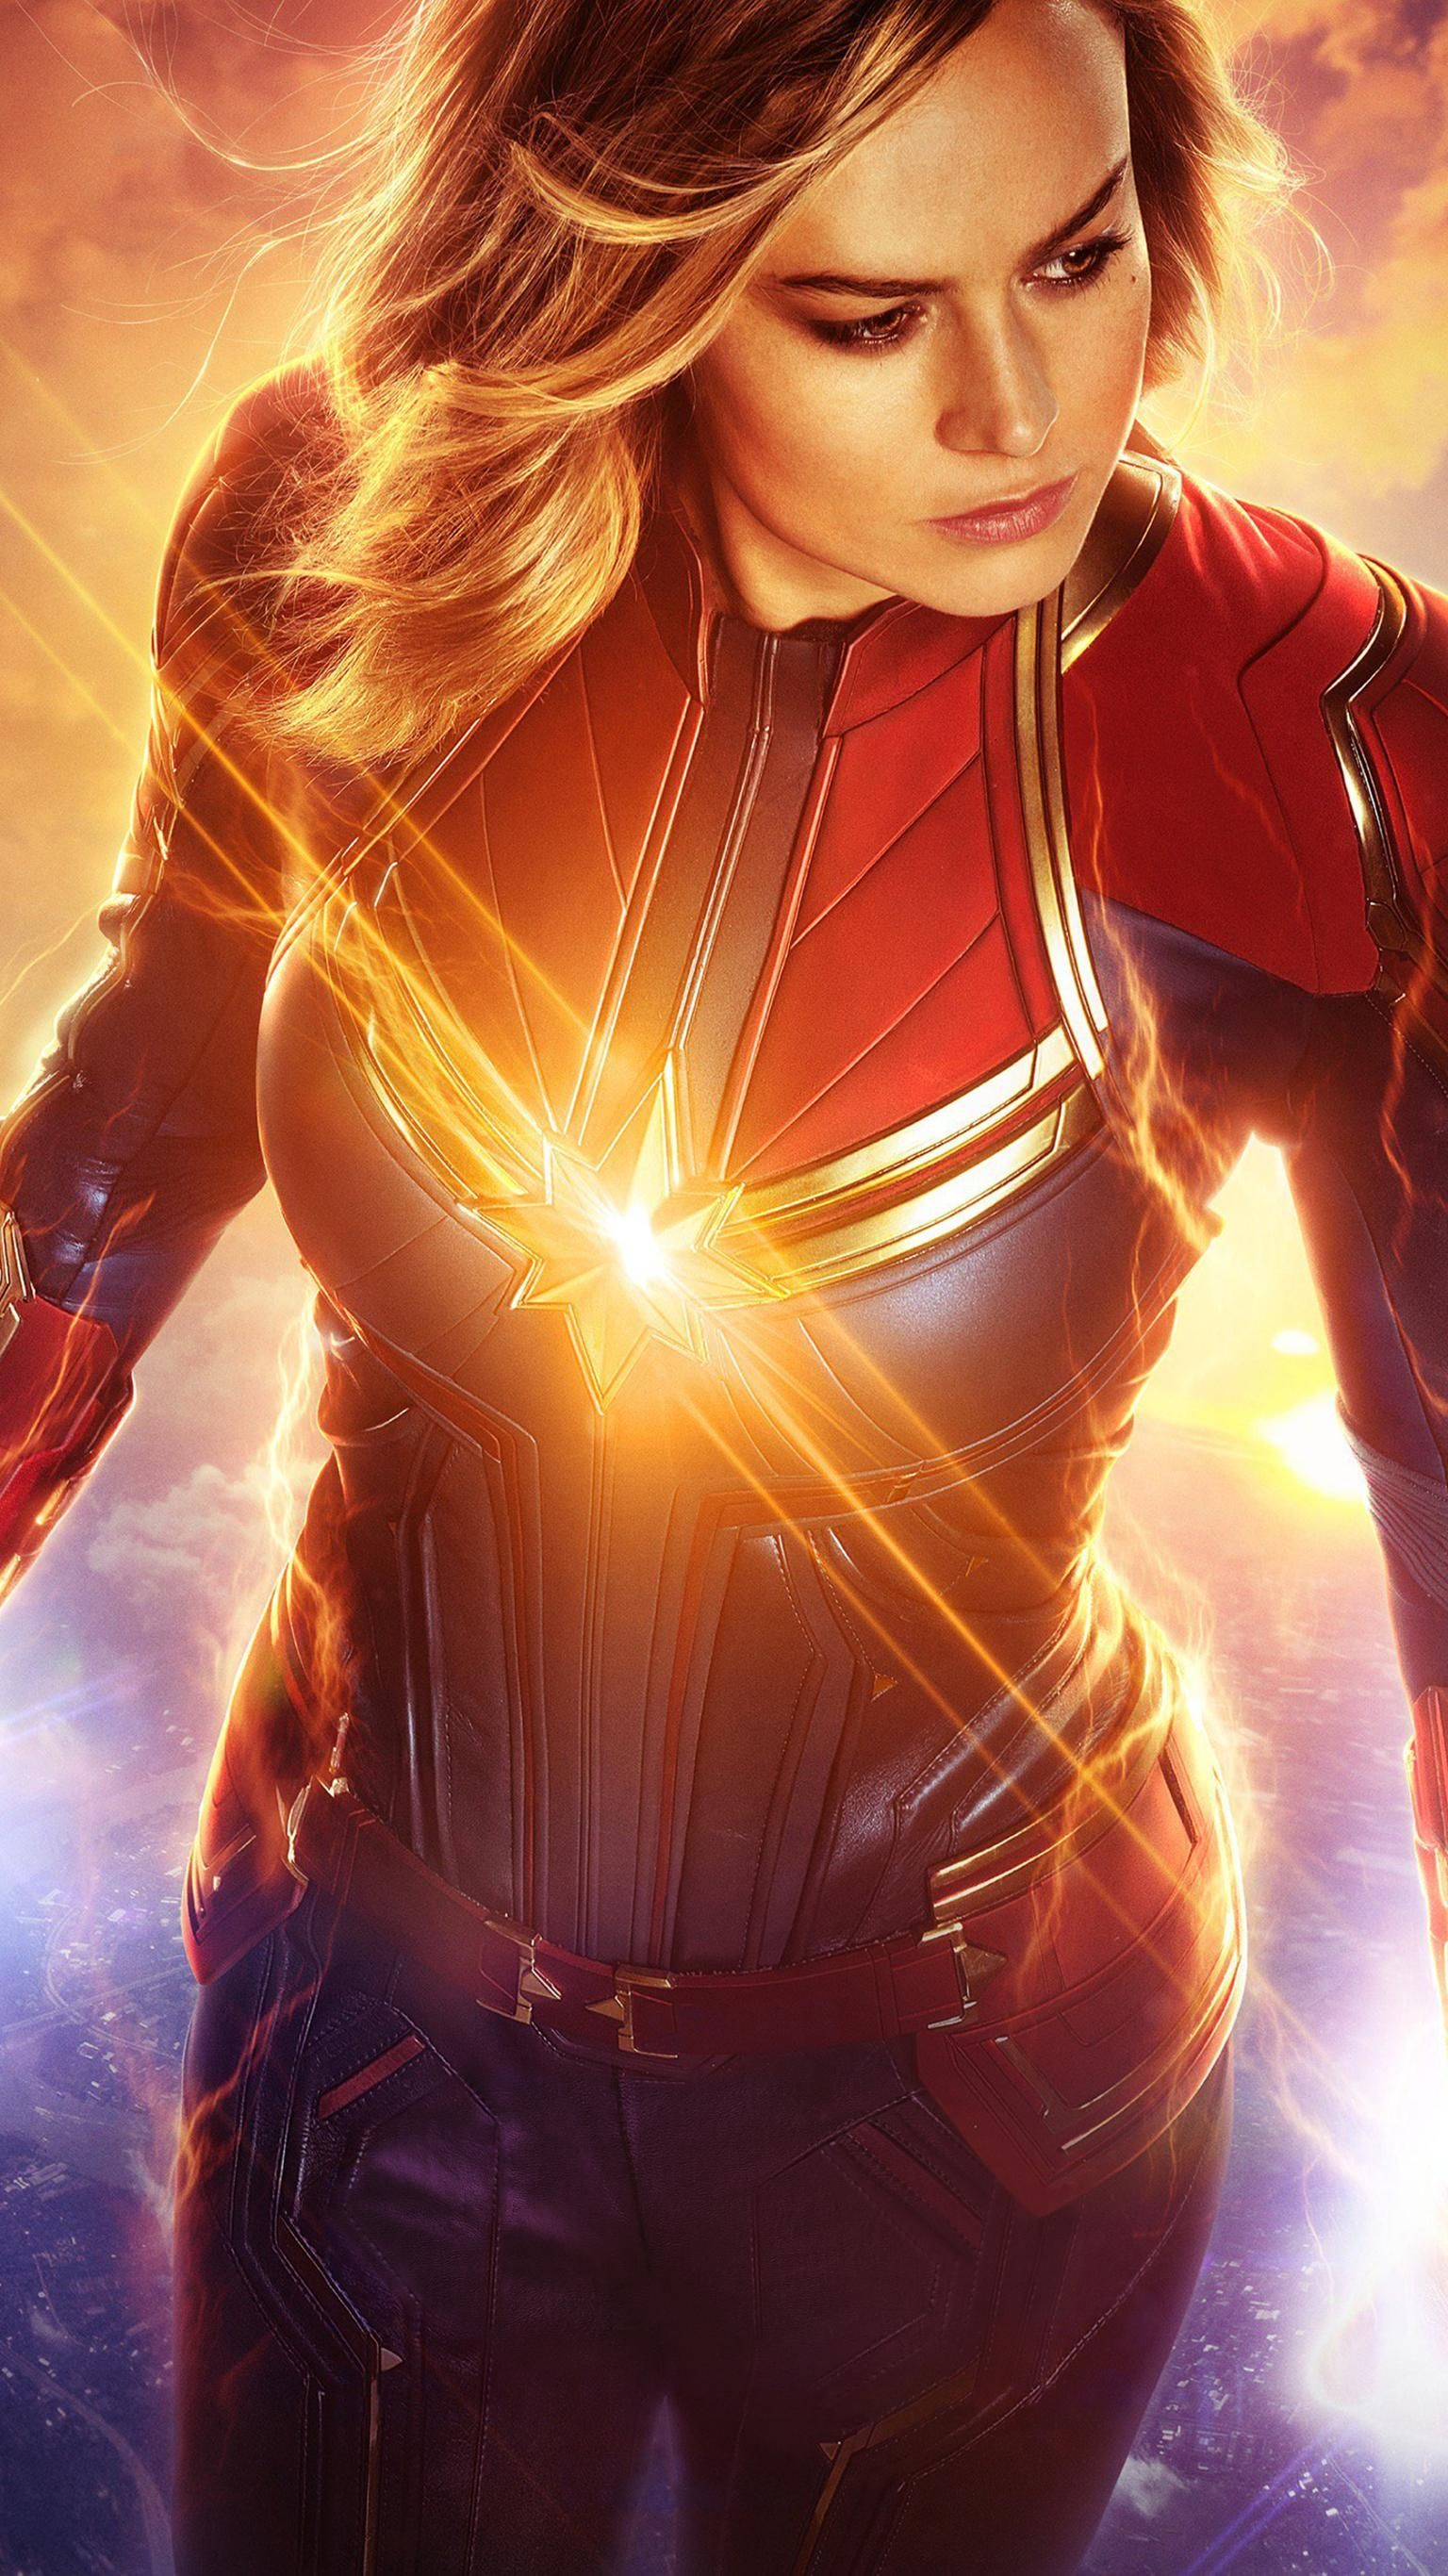 Captain Marvel 4k New Poster Wallpapers Movies Wallpapers Hd Wallpapers Carol Danvers Wallpapers Captain Marv Captain Marvel Free Movies Online Full Movies